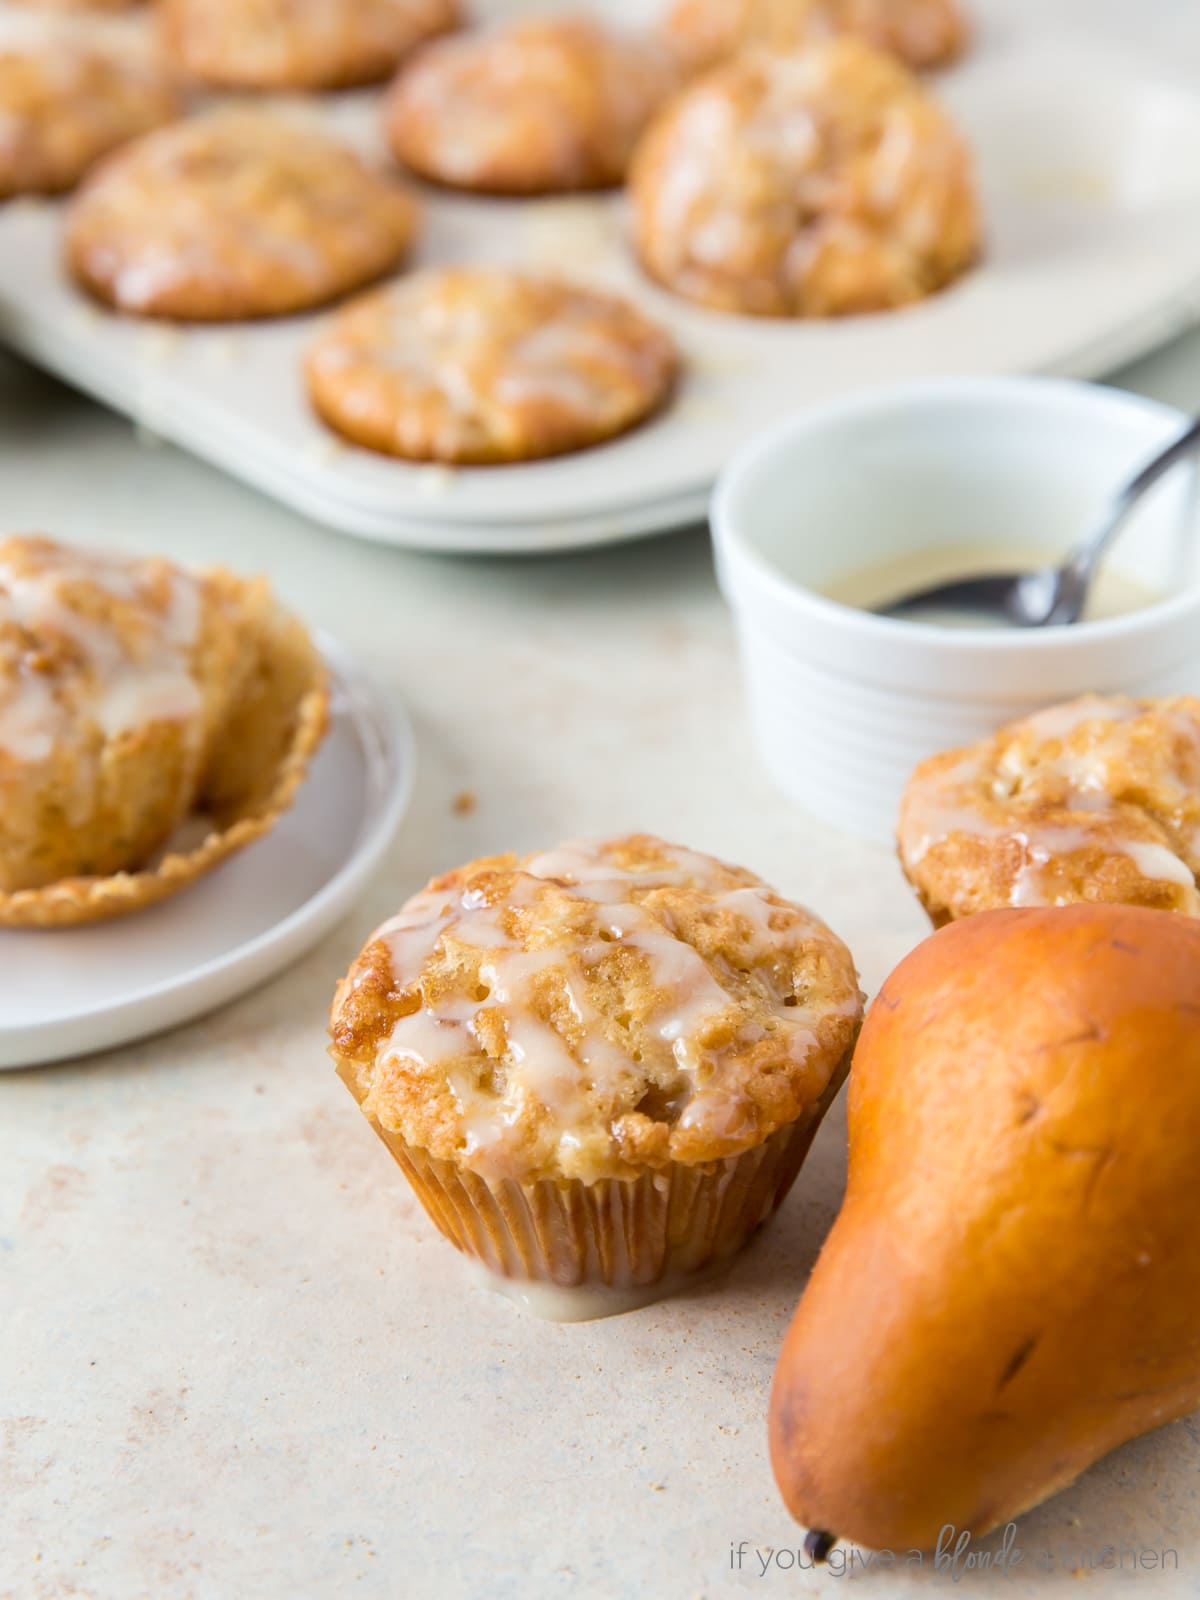 ginger pear muffin next to brown pear and bowl of honey glaze